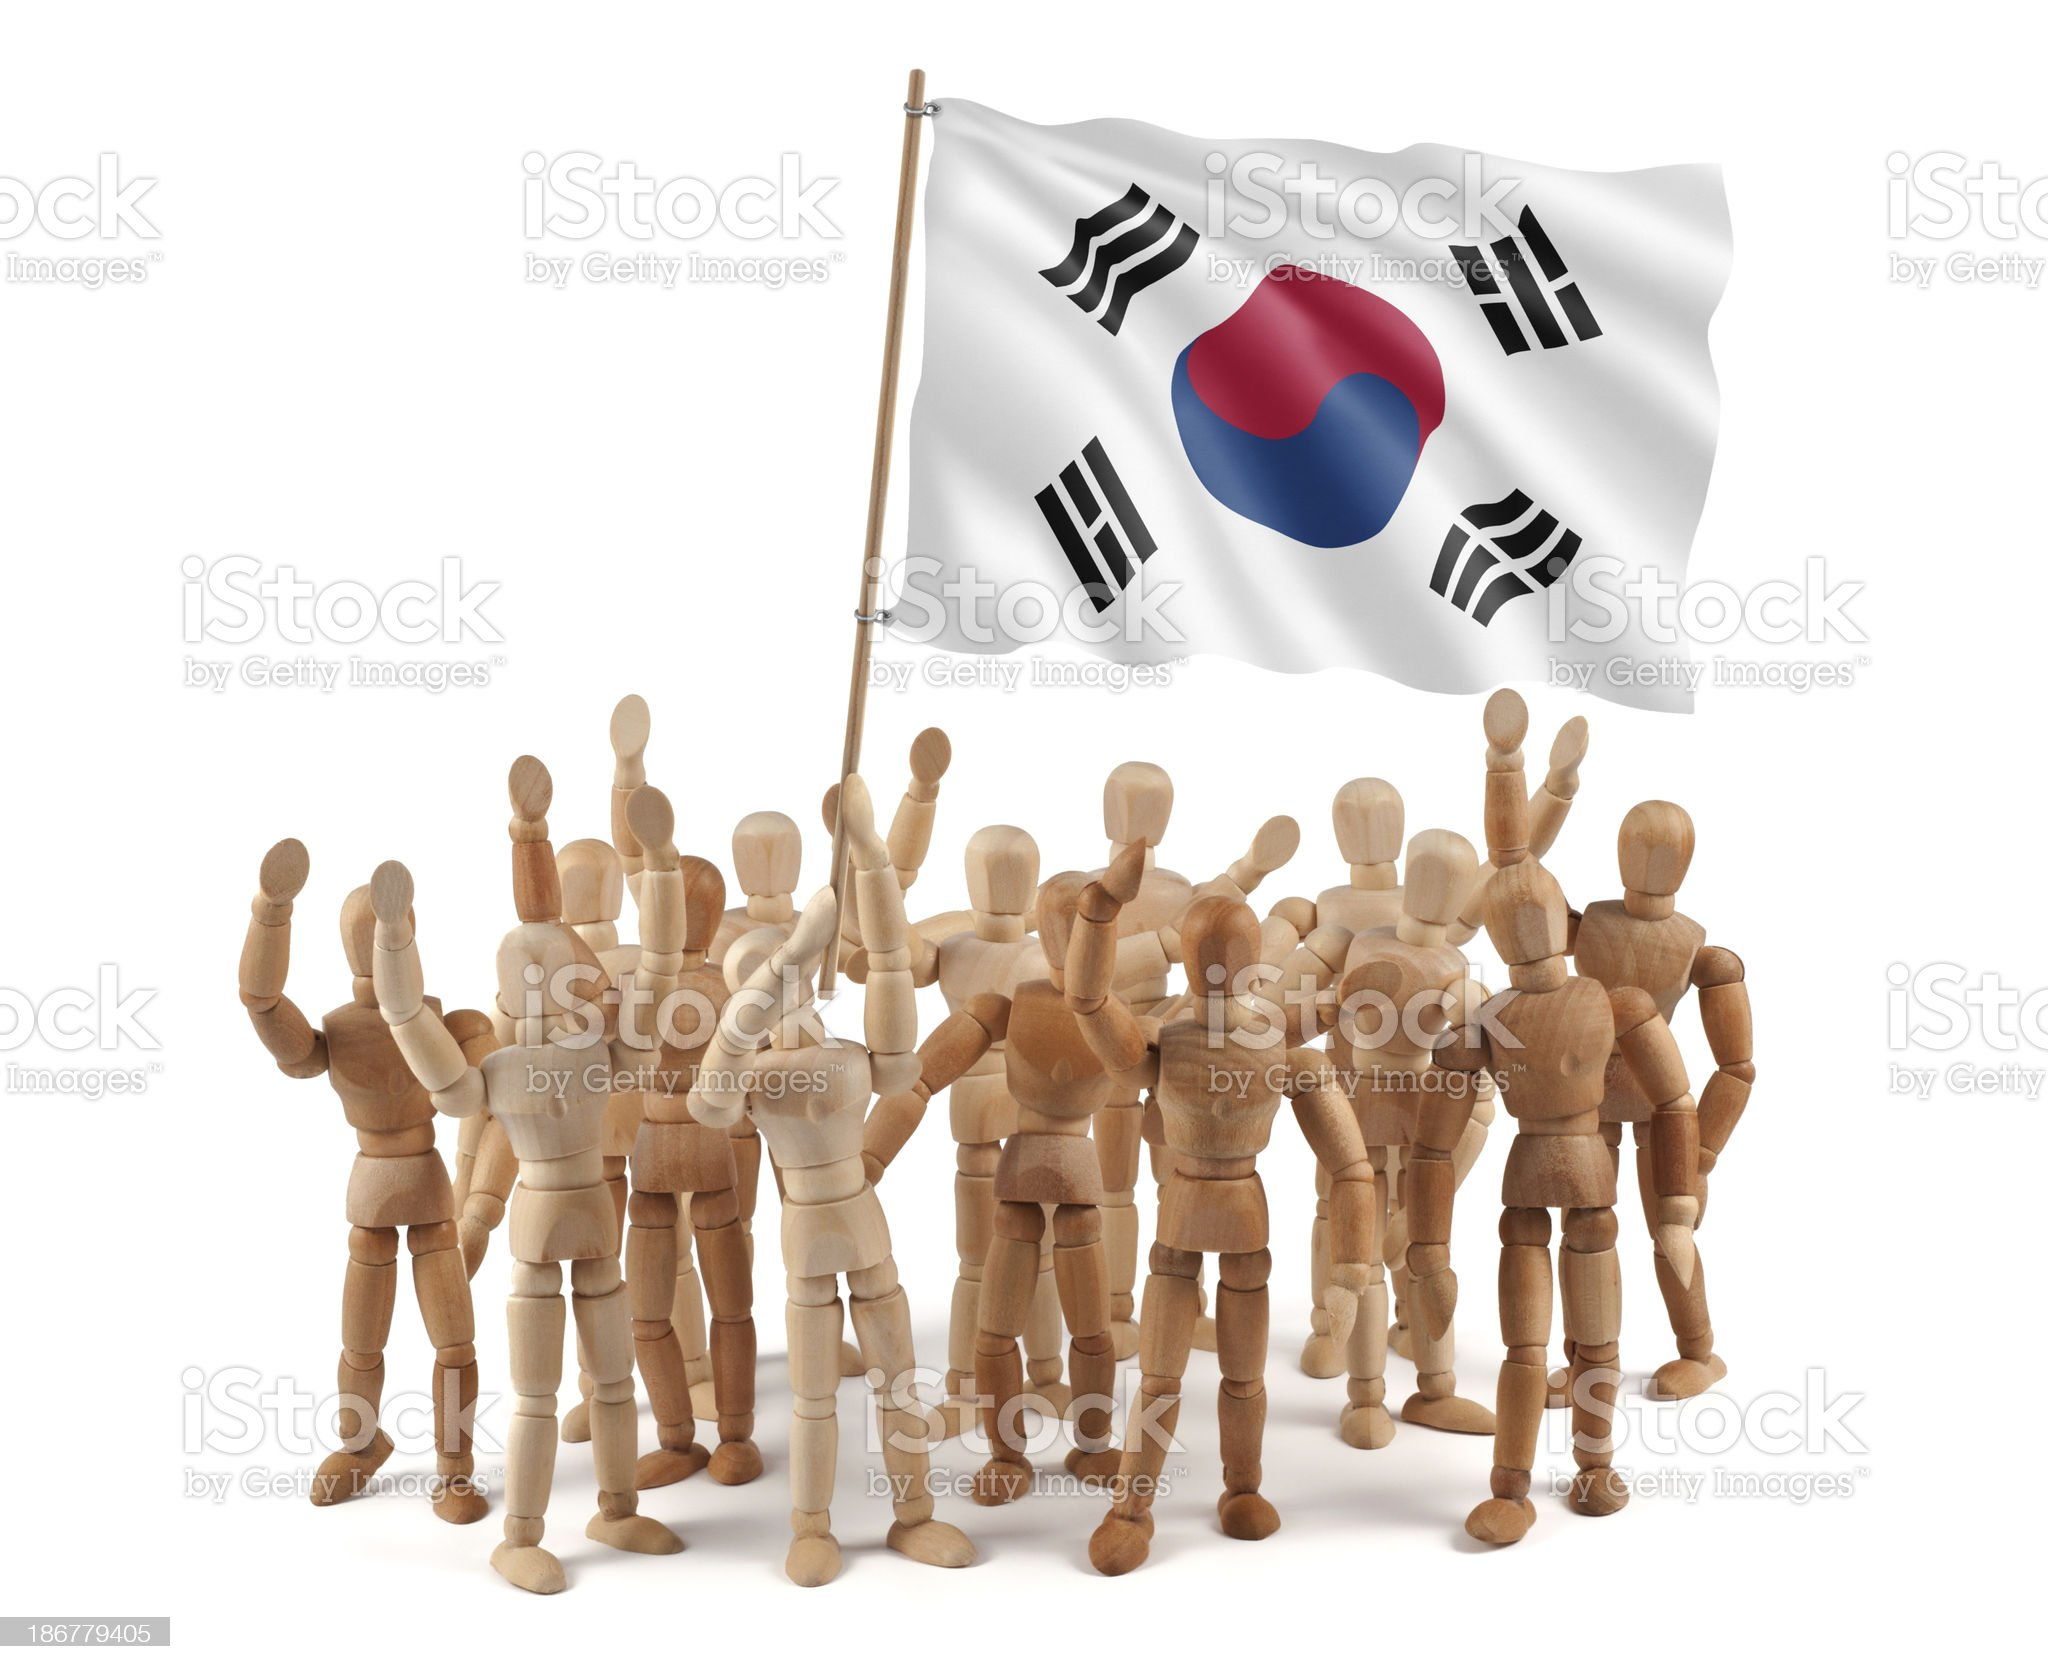 Korea Republic - wooden mannequin group with flag royalty-free stock photo